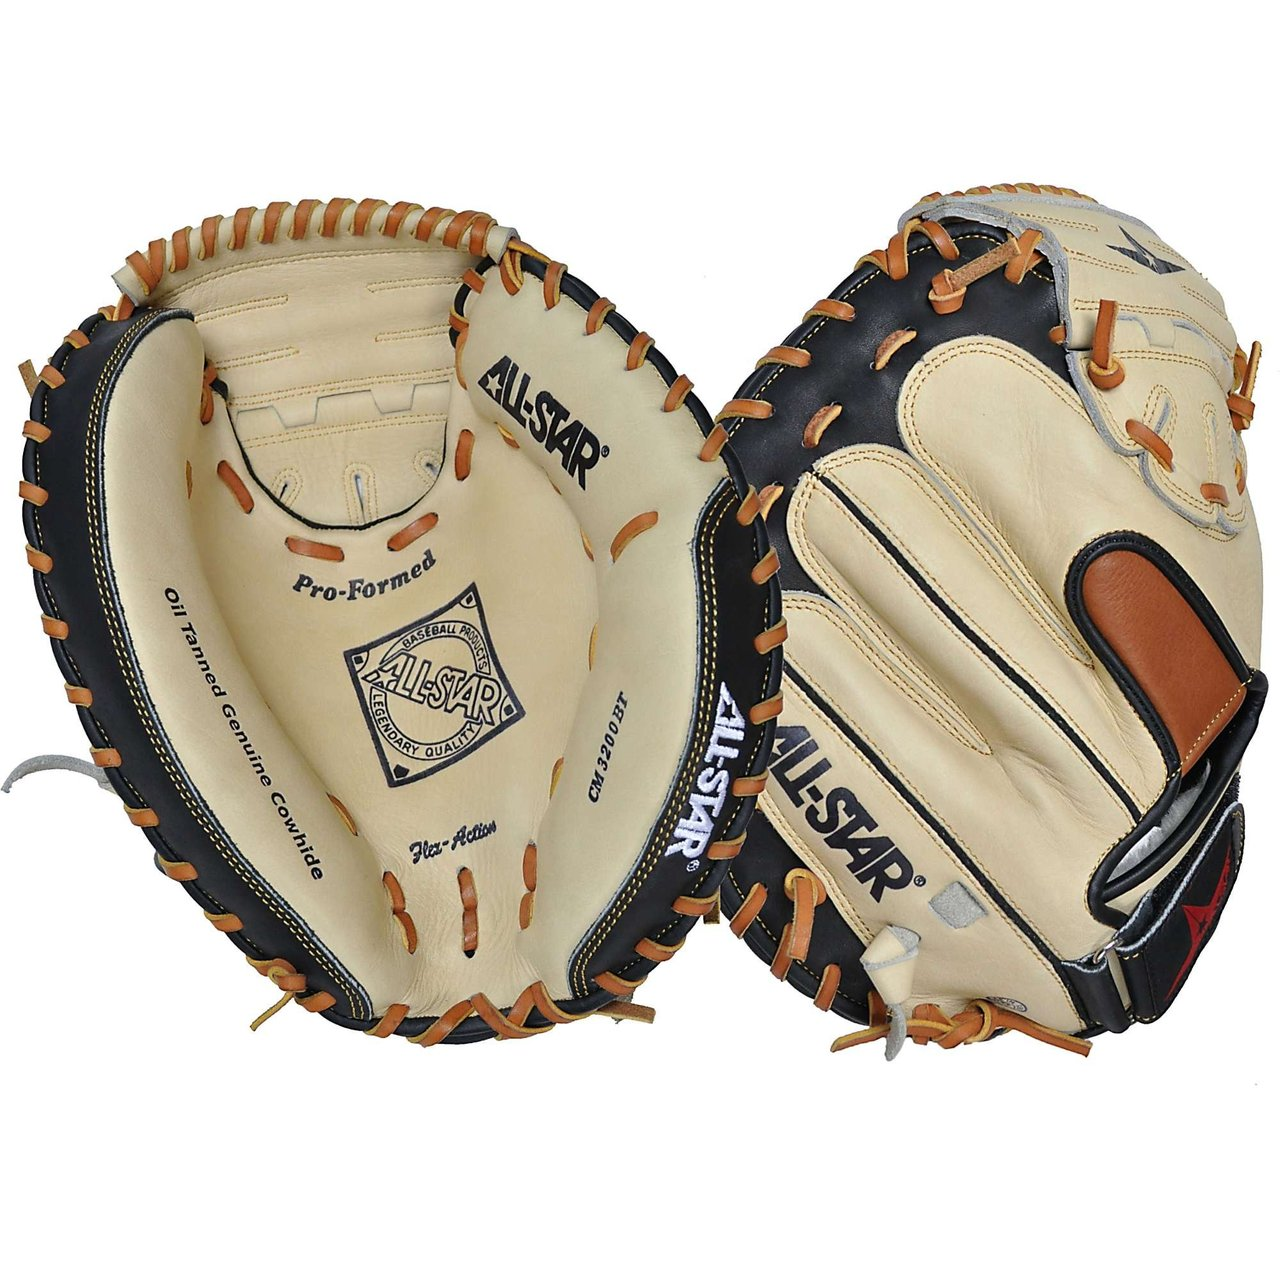 AllStar CM1200BT Youth Catchers Mitt 31.5 inch (Right Handed Throw) : The All Star CM1200BT features Oil Tanned Genuine Cowhide, Flex-Action heel, and a Pro Formed pocket.. All Star CM1200SBT Youth Catcher's Mitt Features. Oil Tanned Genuine Cowhide. Flex-Action Heel Pro Formed Pocket.